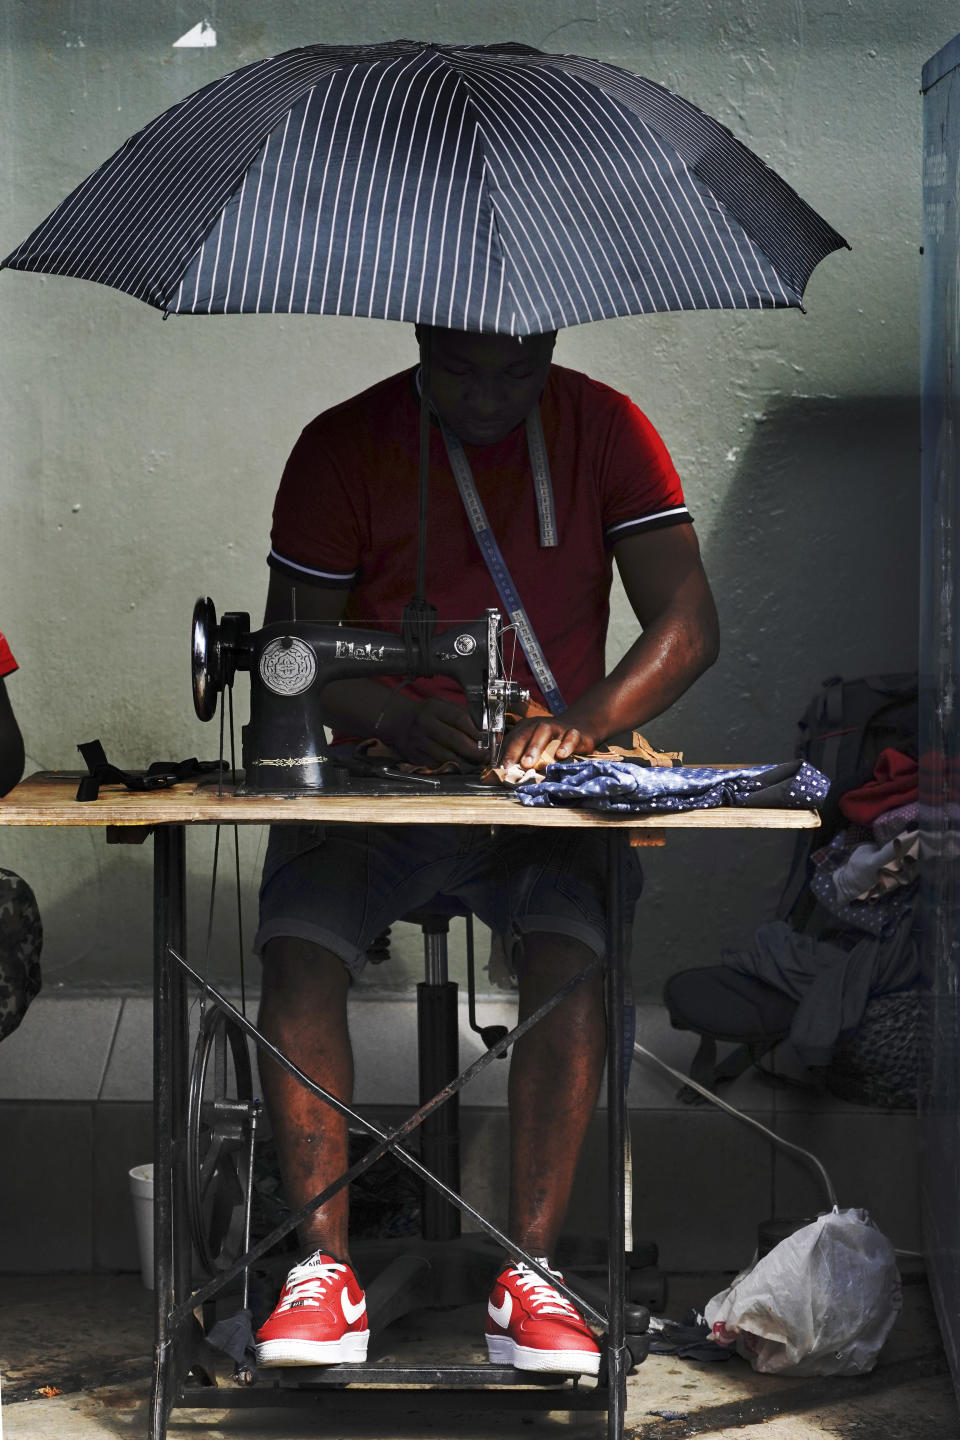 FILE - In this Sept. 3, 2021 file photo, a Haitian migrant operates a sewing machine at a market in Tapachula, Mexico. Thousands of mostly Haitian migrants have been stuck in the southern city of Tapachula, many waiting here for months and some up to a year for asylum requests to be processed. (AP Photo/Marco Ugarte, File)